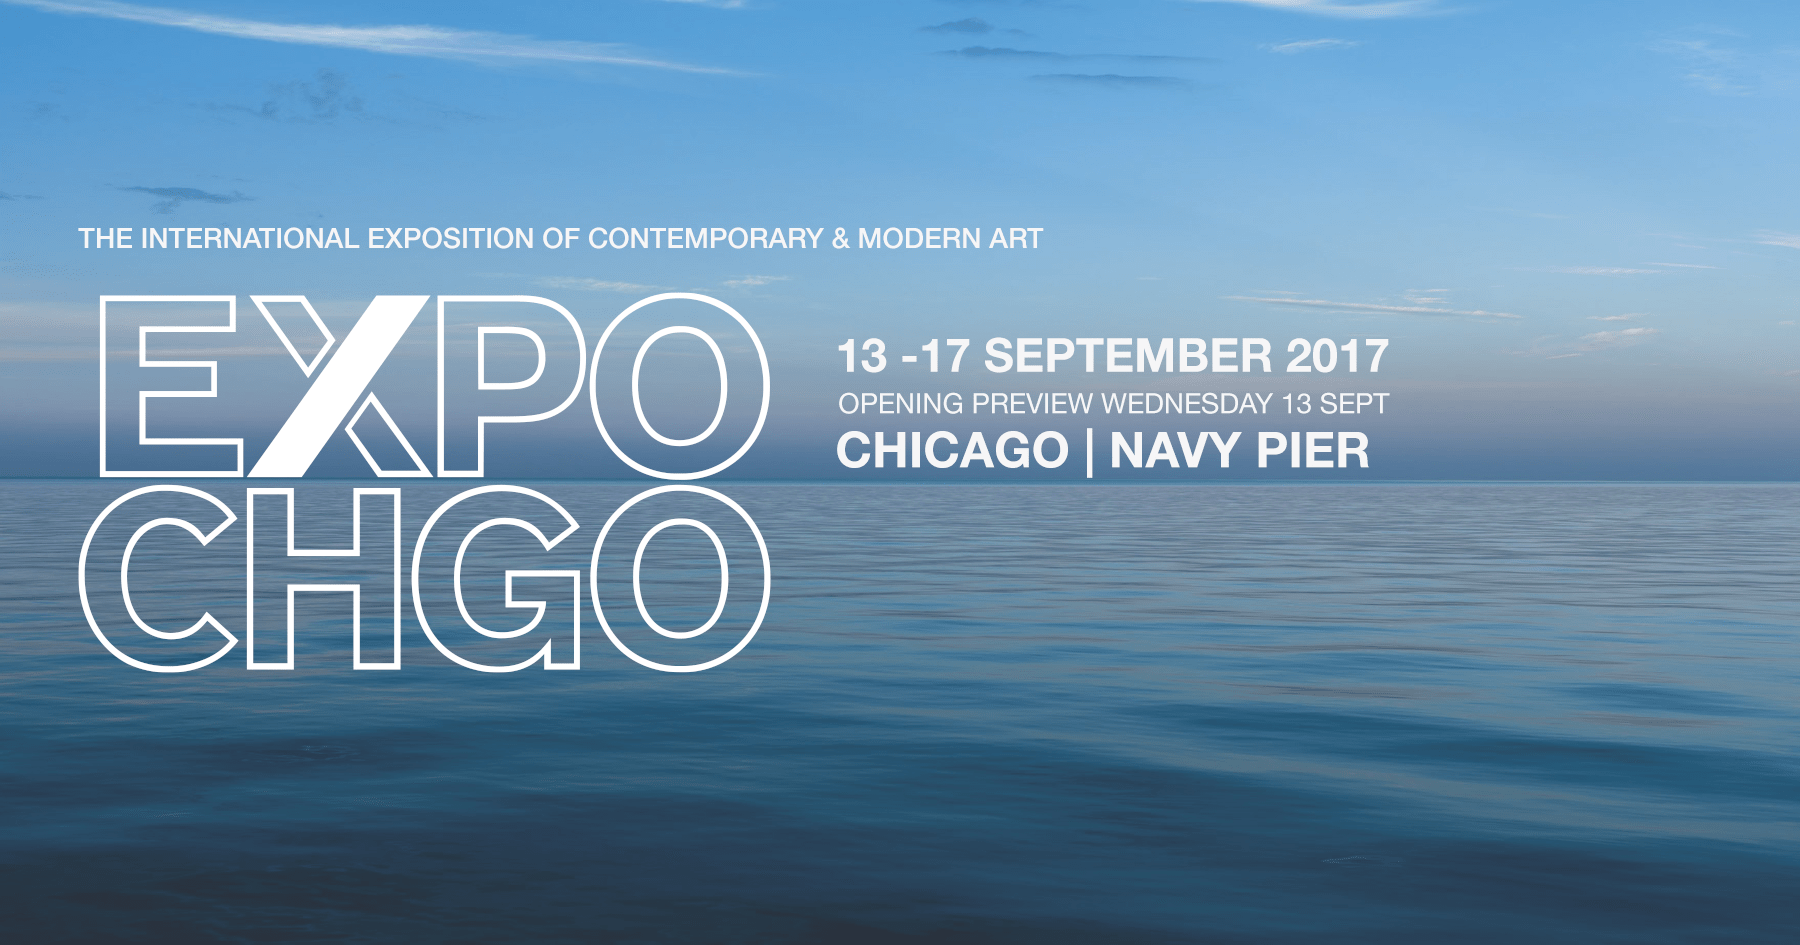 Expo Chicago 2017 logo